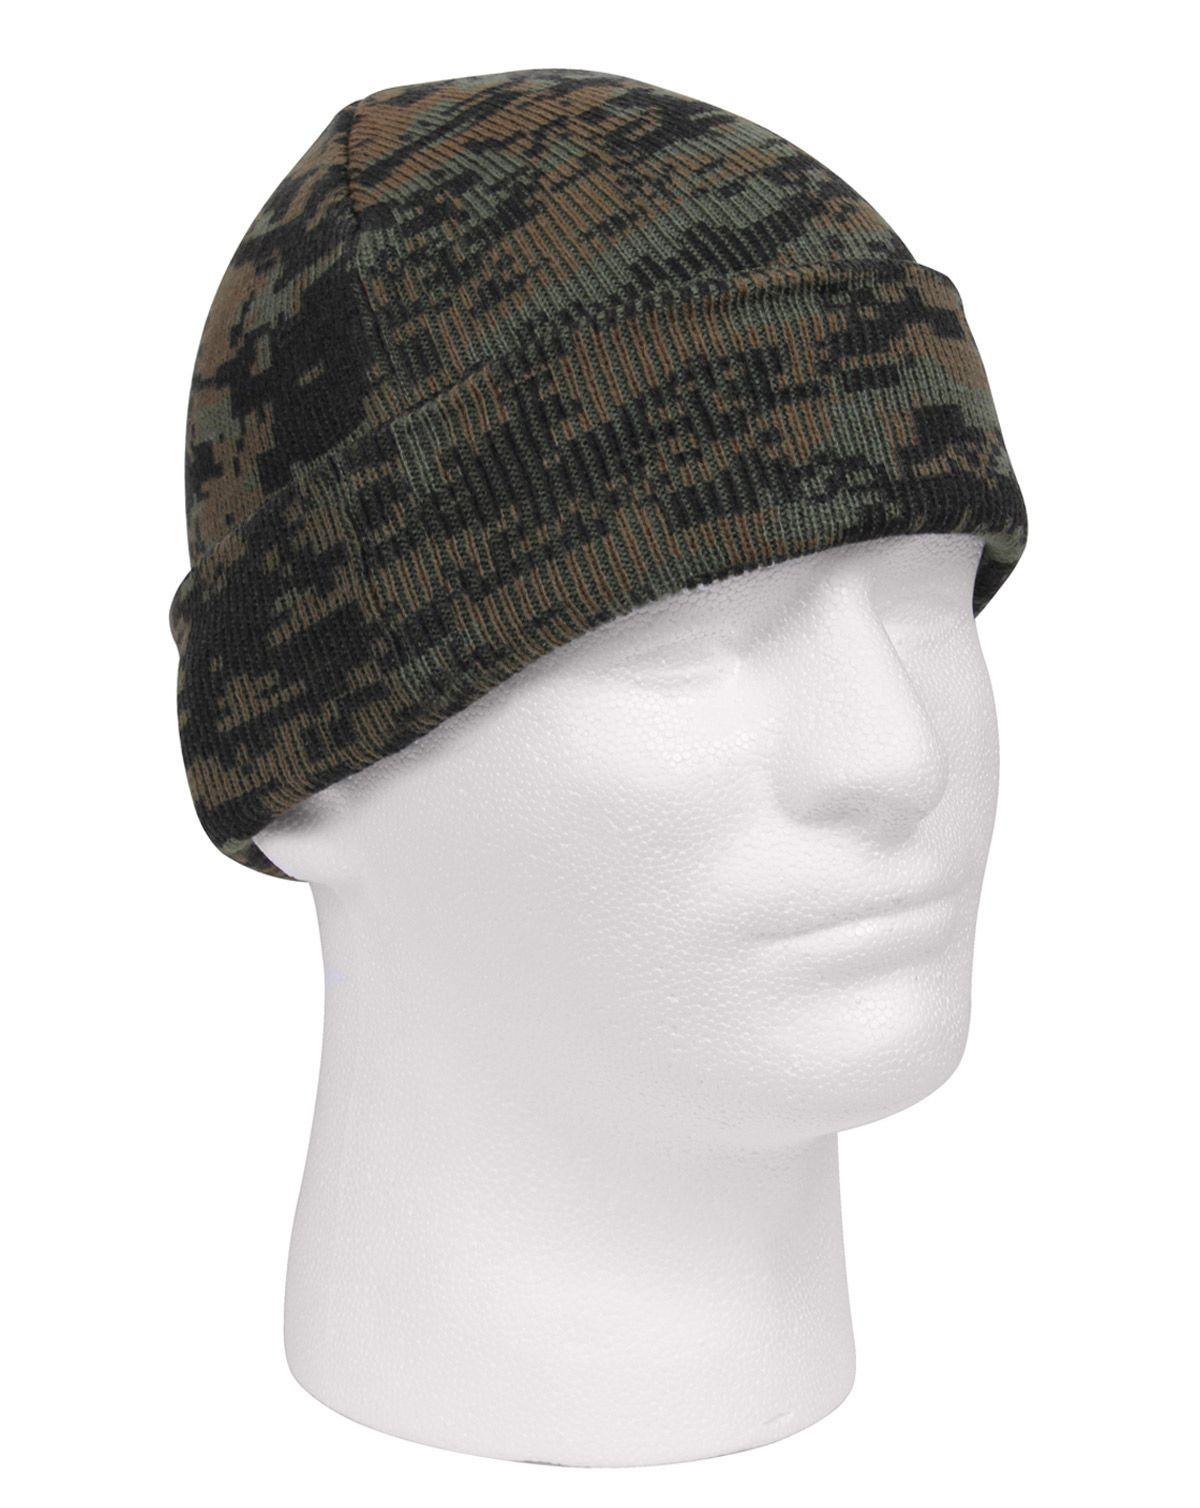 Image of   Rothco Camo Watch Cap (Woodland Digital Camo, One Size)